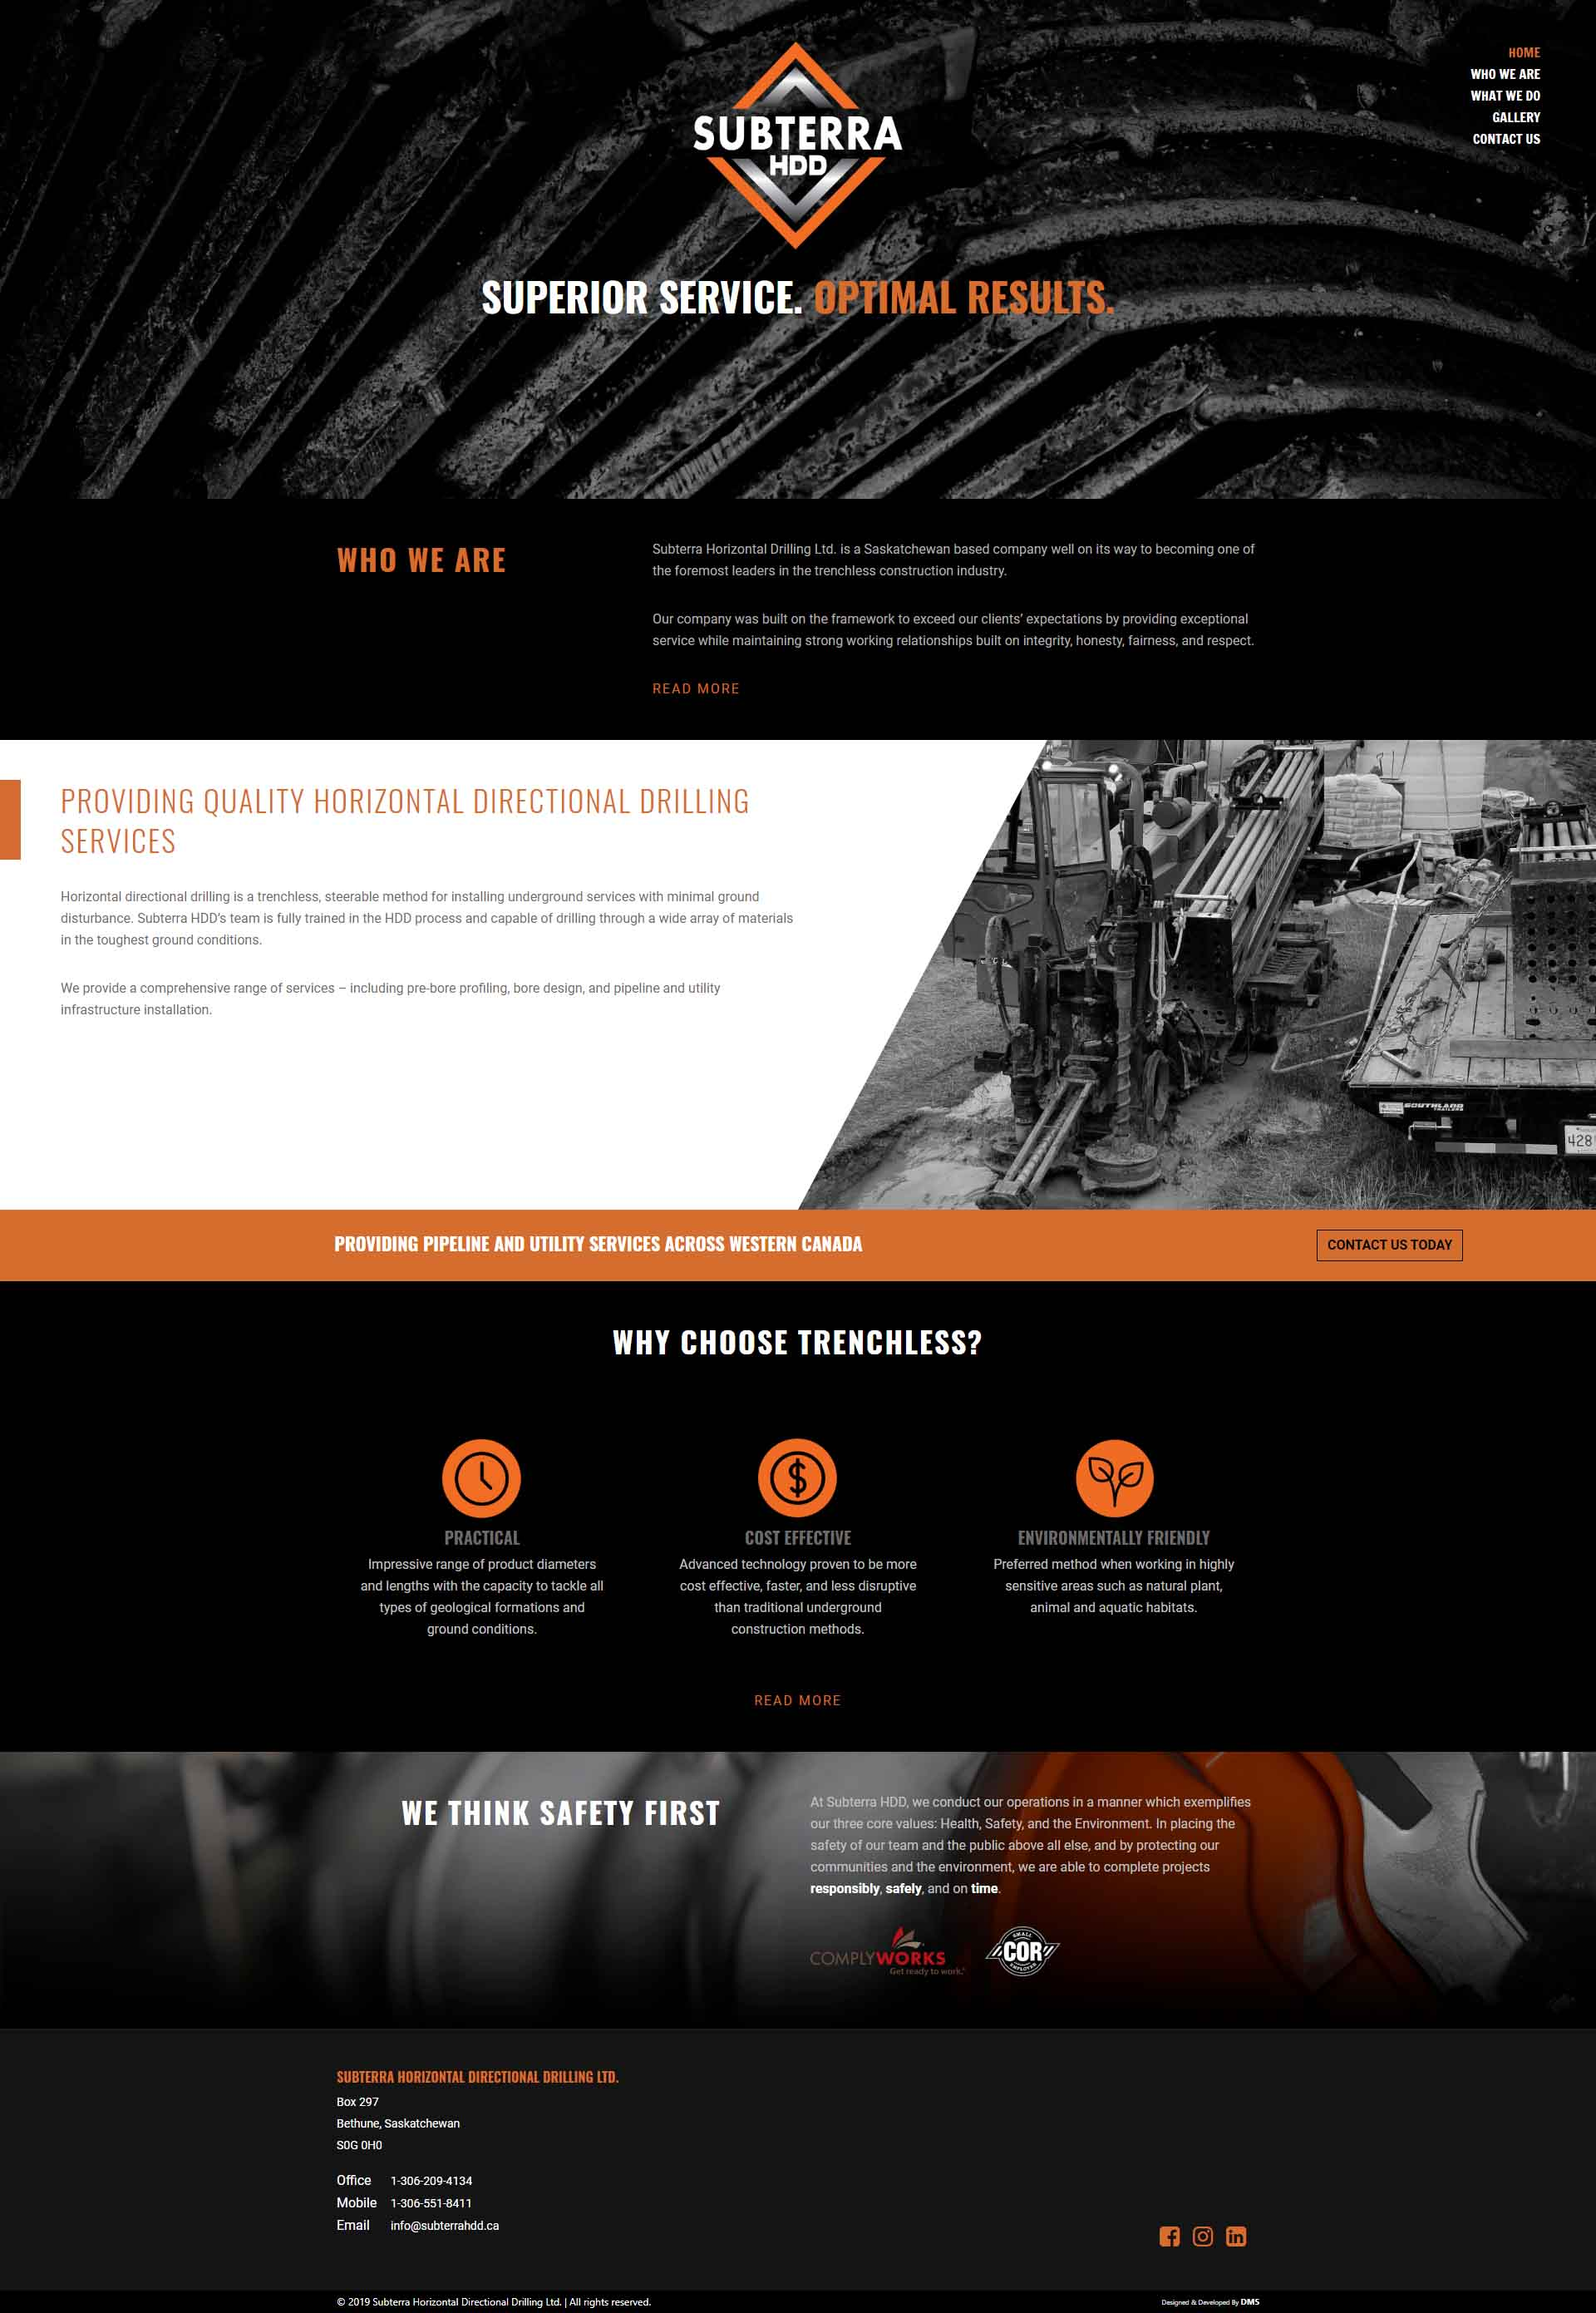 DMS Services Website Portfolio - Subterra Horizontal Directional Drilling Ltd.